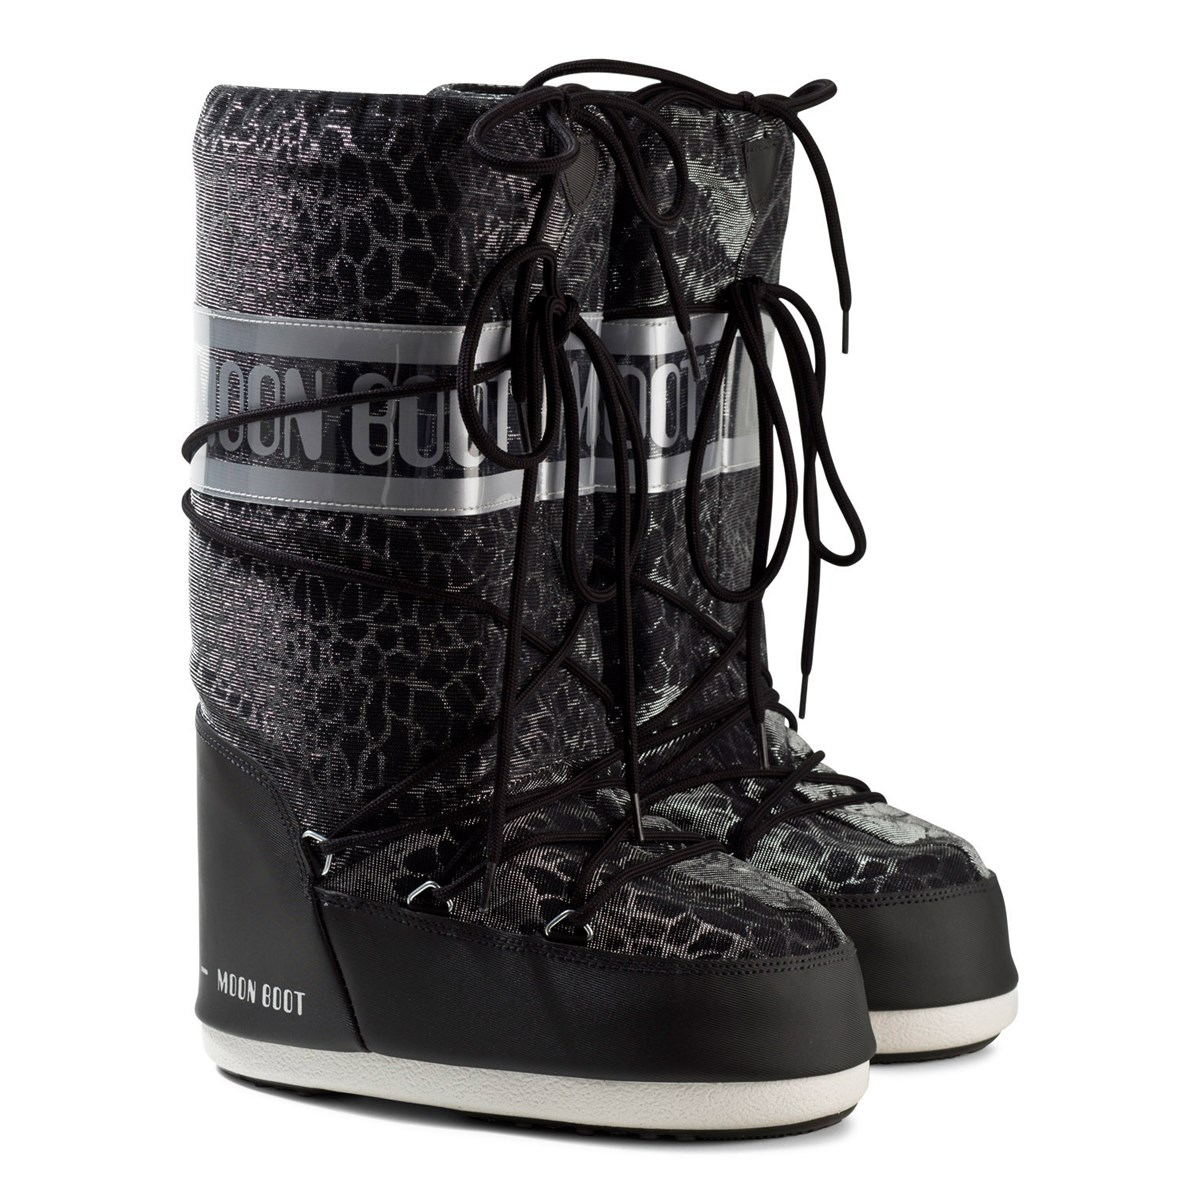 moon boot black sunset snake effect moon boots. Black Bedroom Furniture Sets. Home Design Ideas